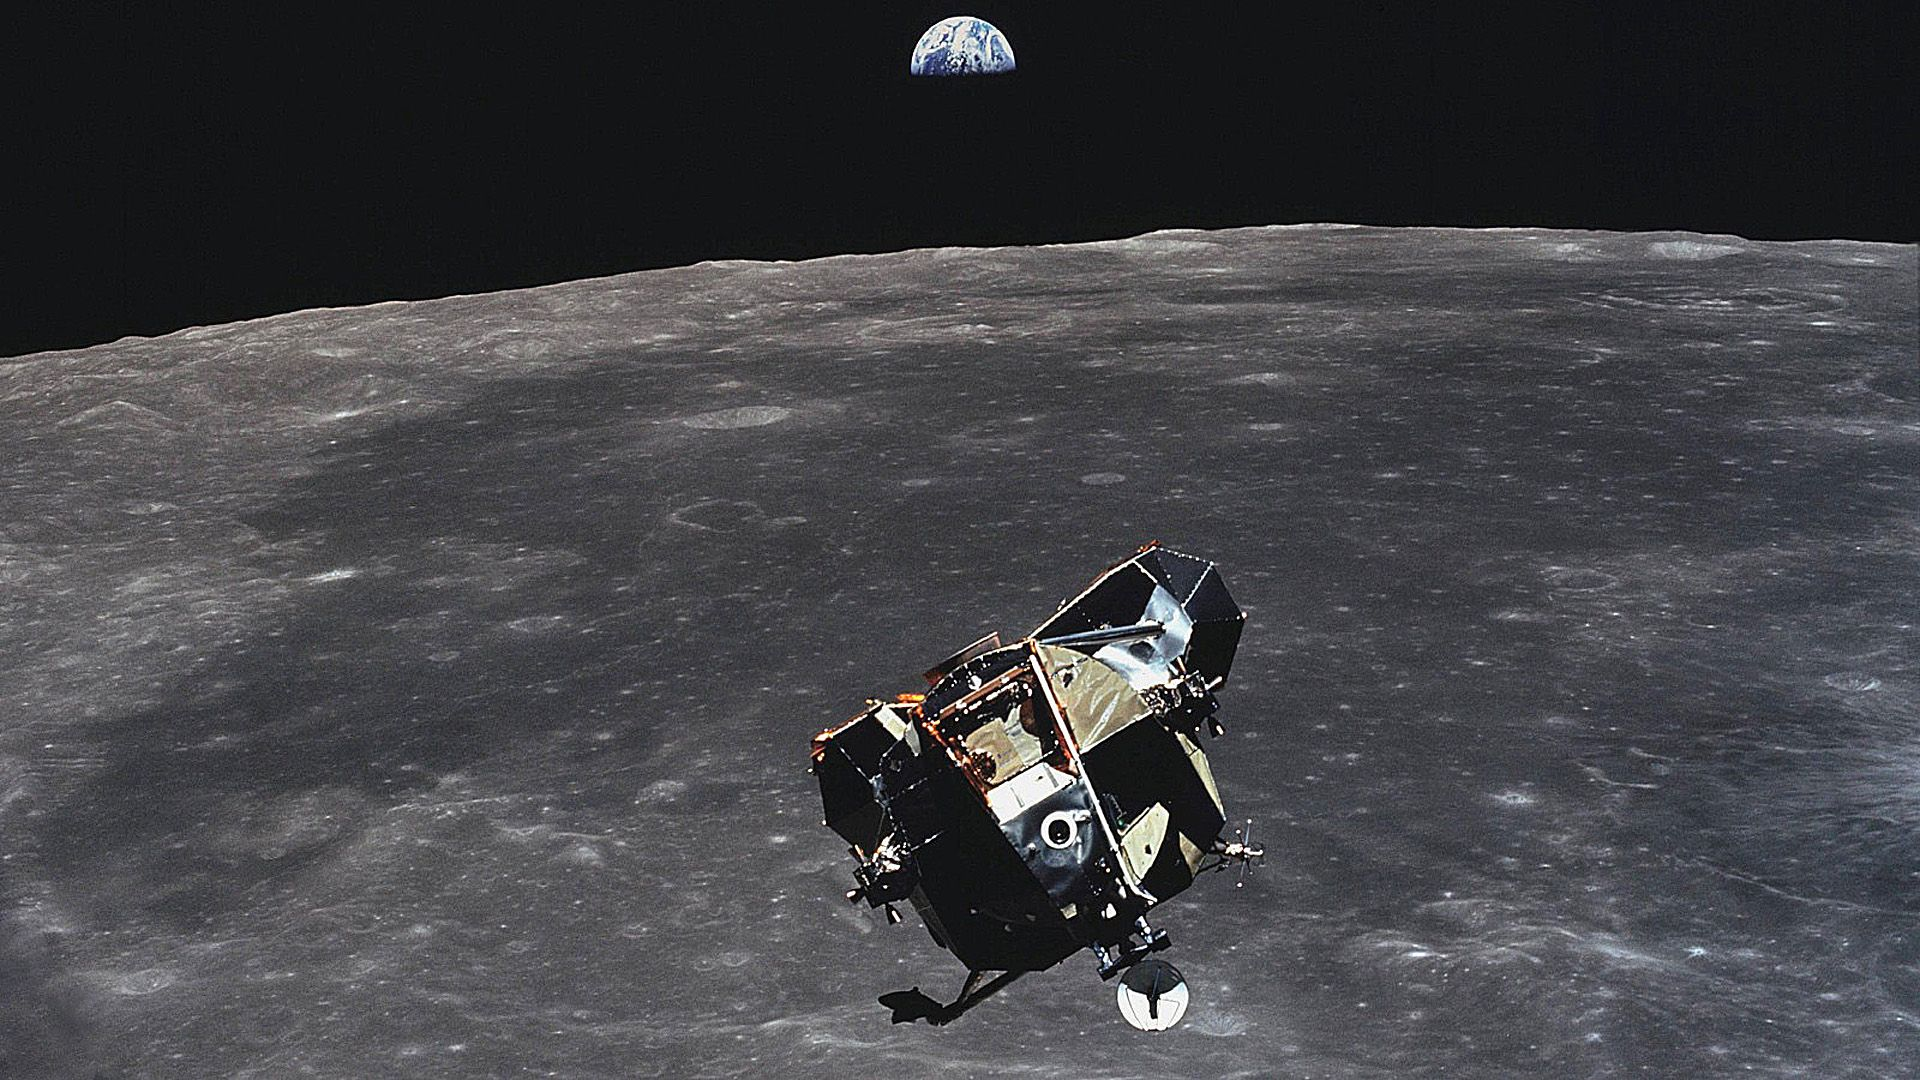 ascending apollo 11 lunar module and earthrise [1920x1080] | reddit